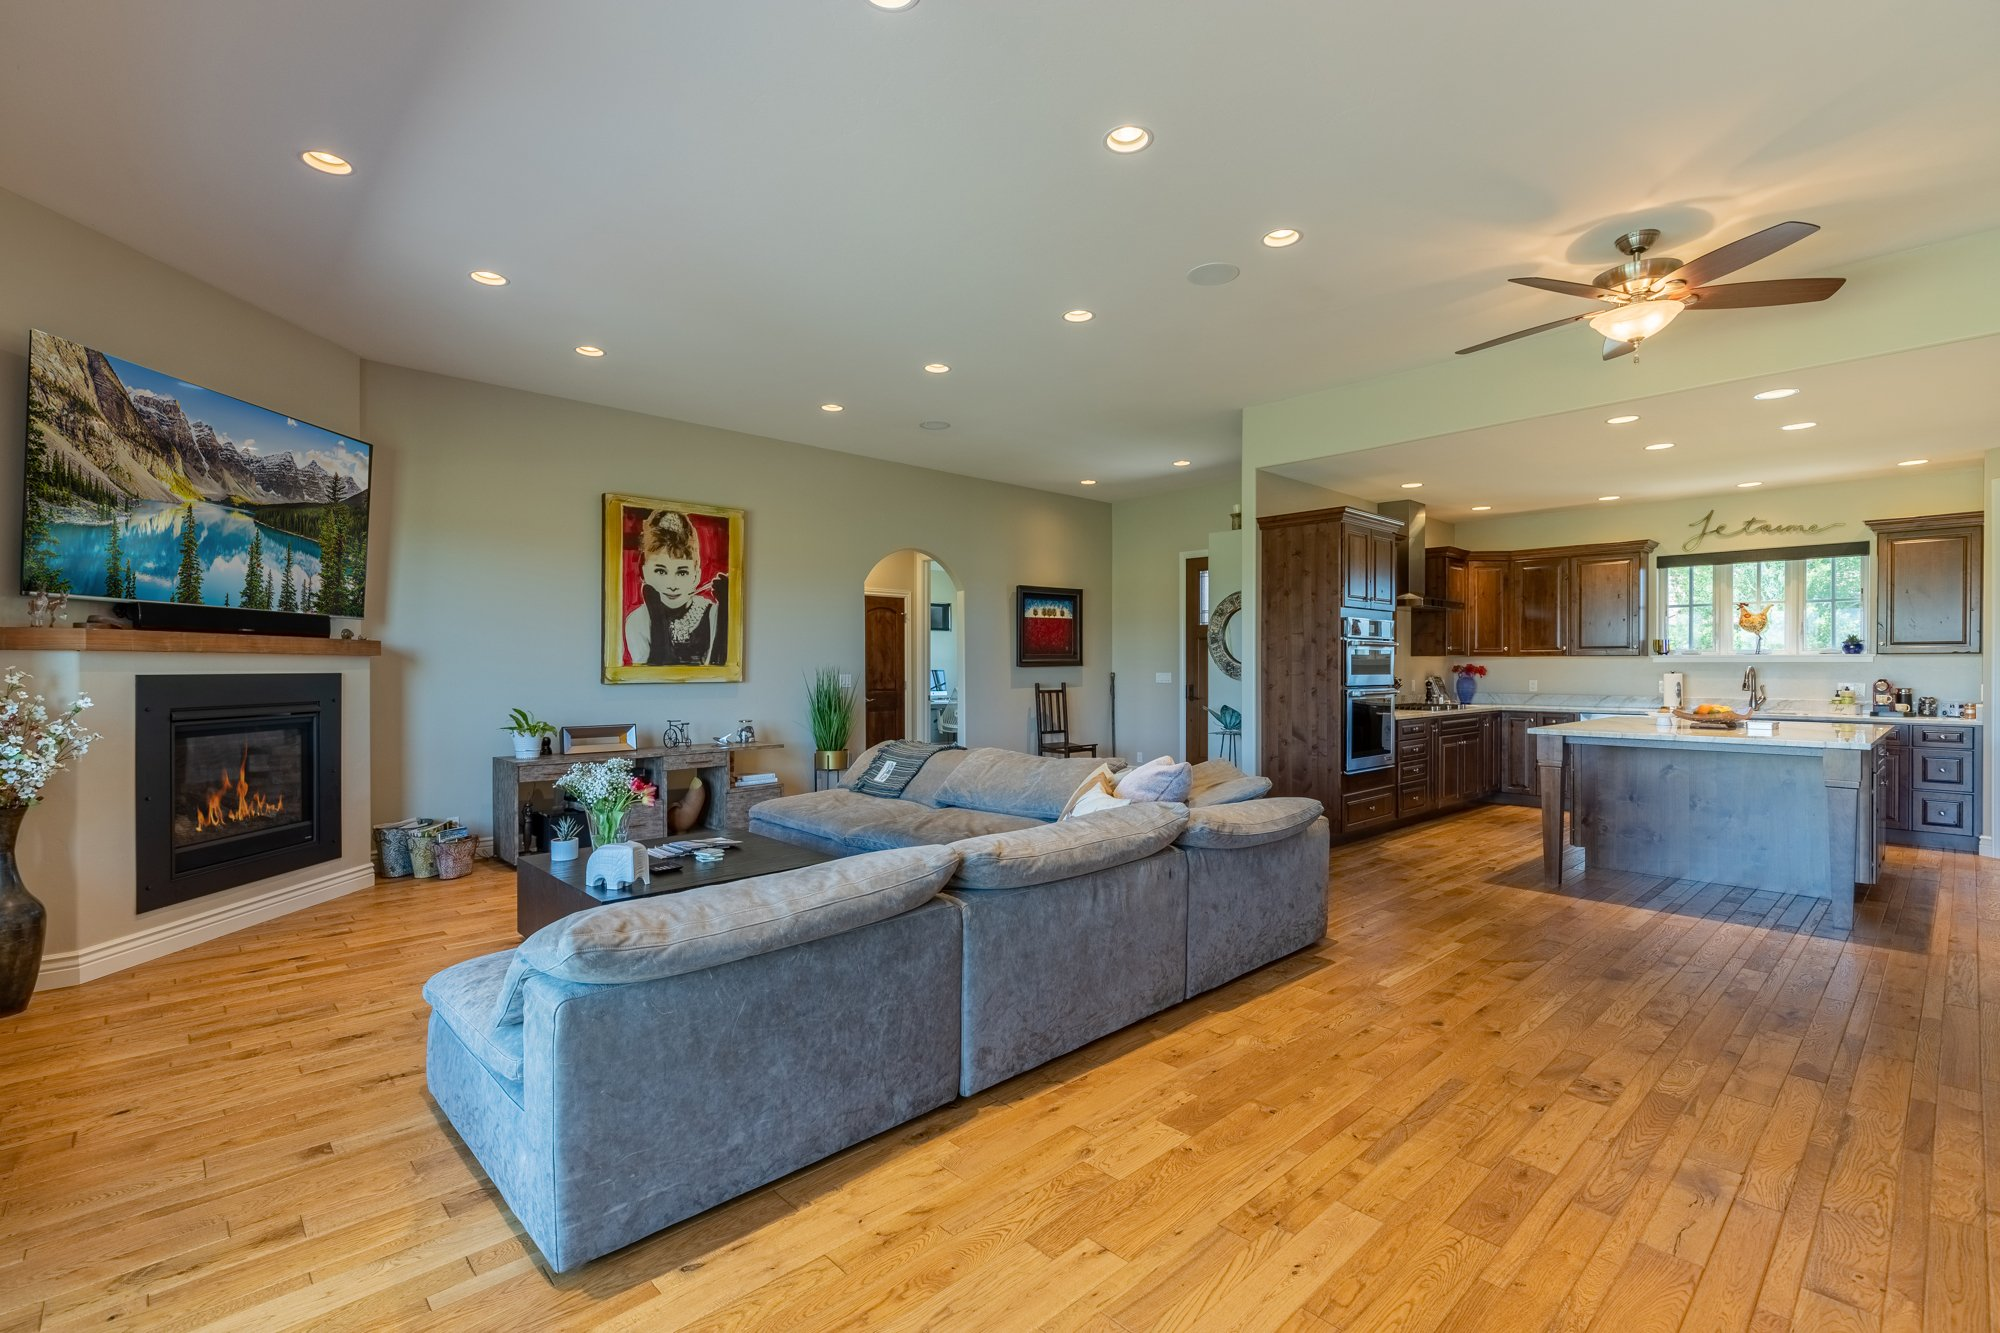 Living Room with Recessed Lighting - 2927 Sleeping Bear Rd Montrose, CO 81401 - Atha Team Real Estate